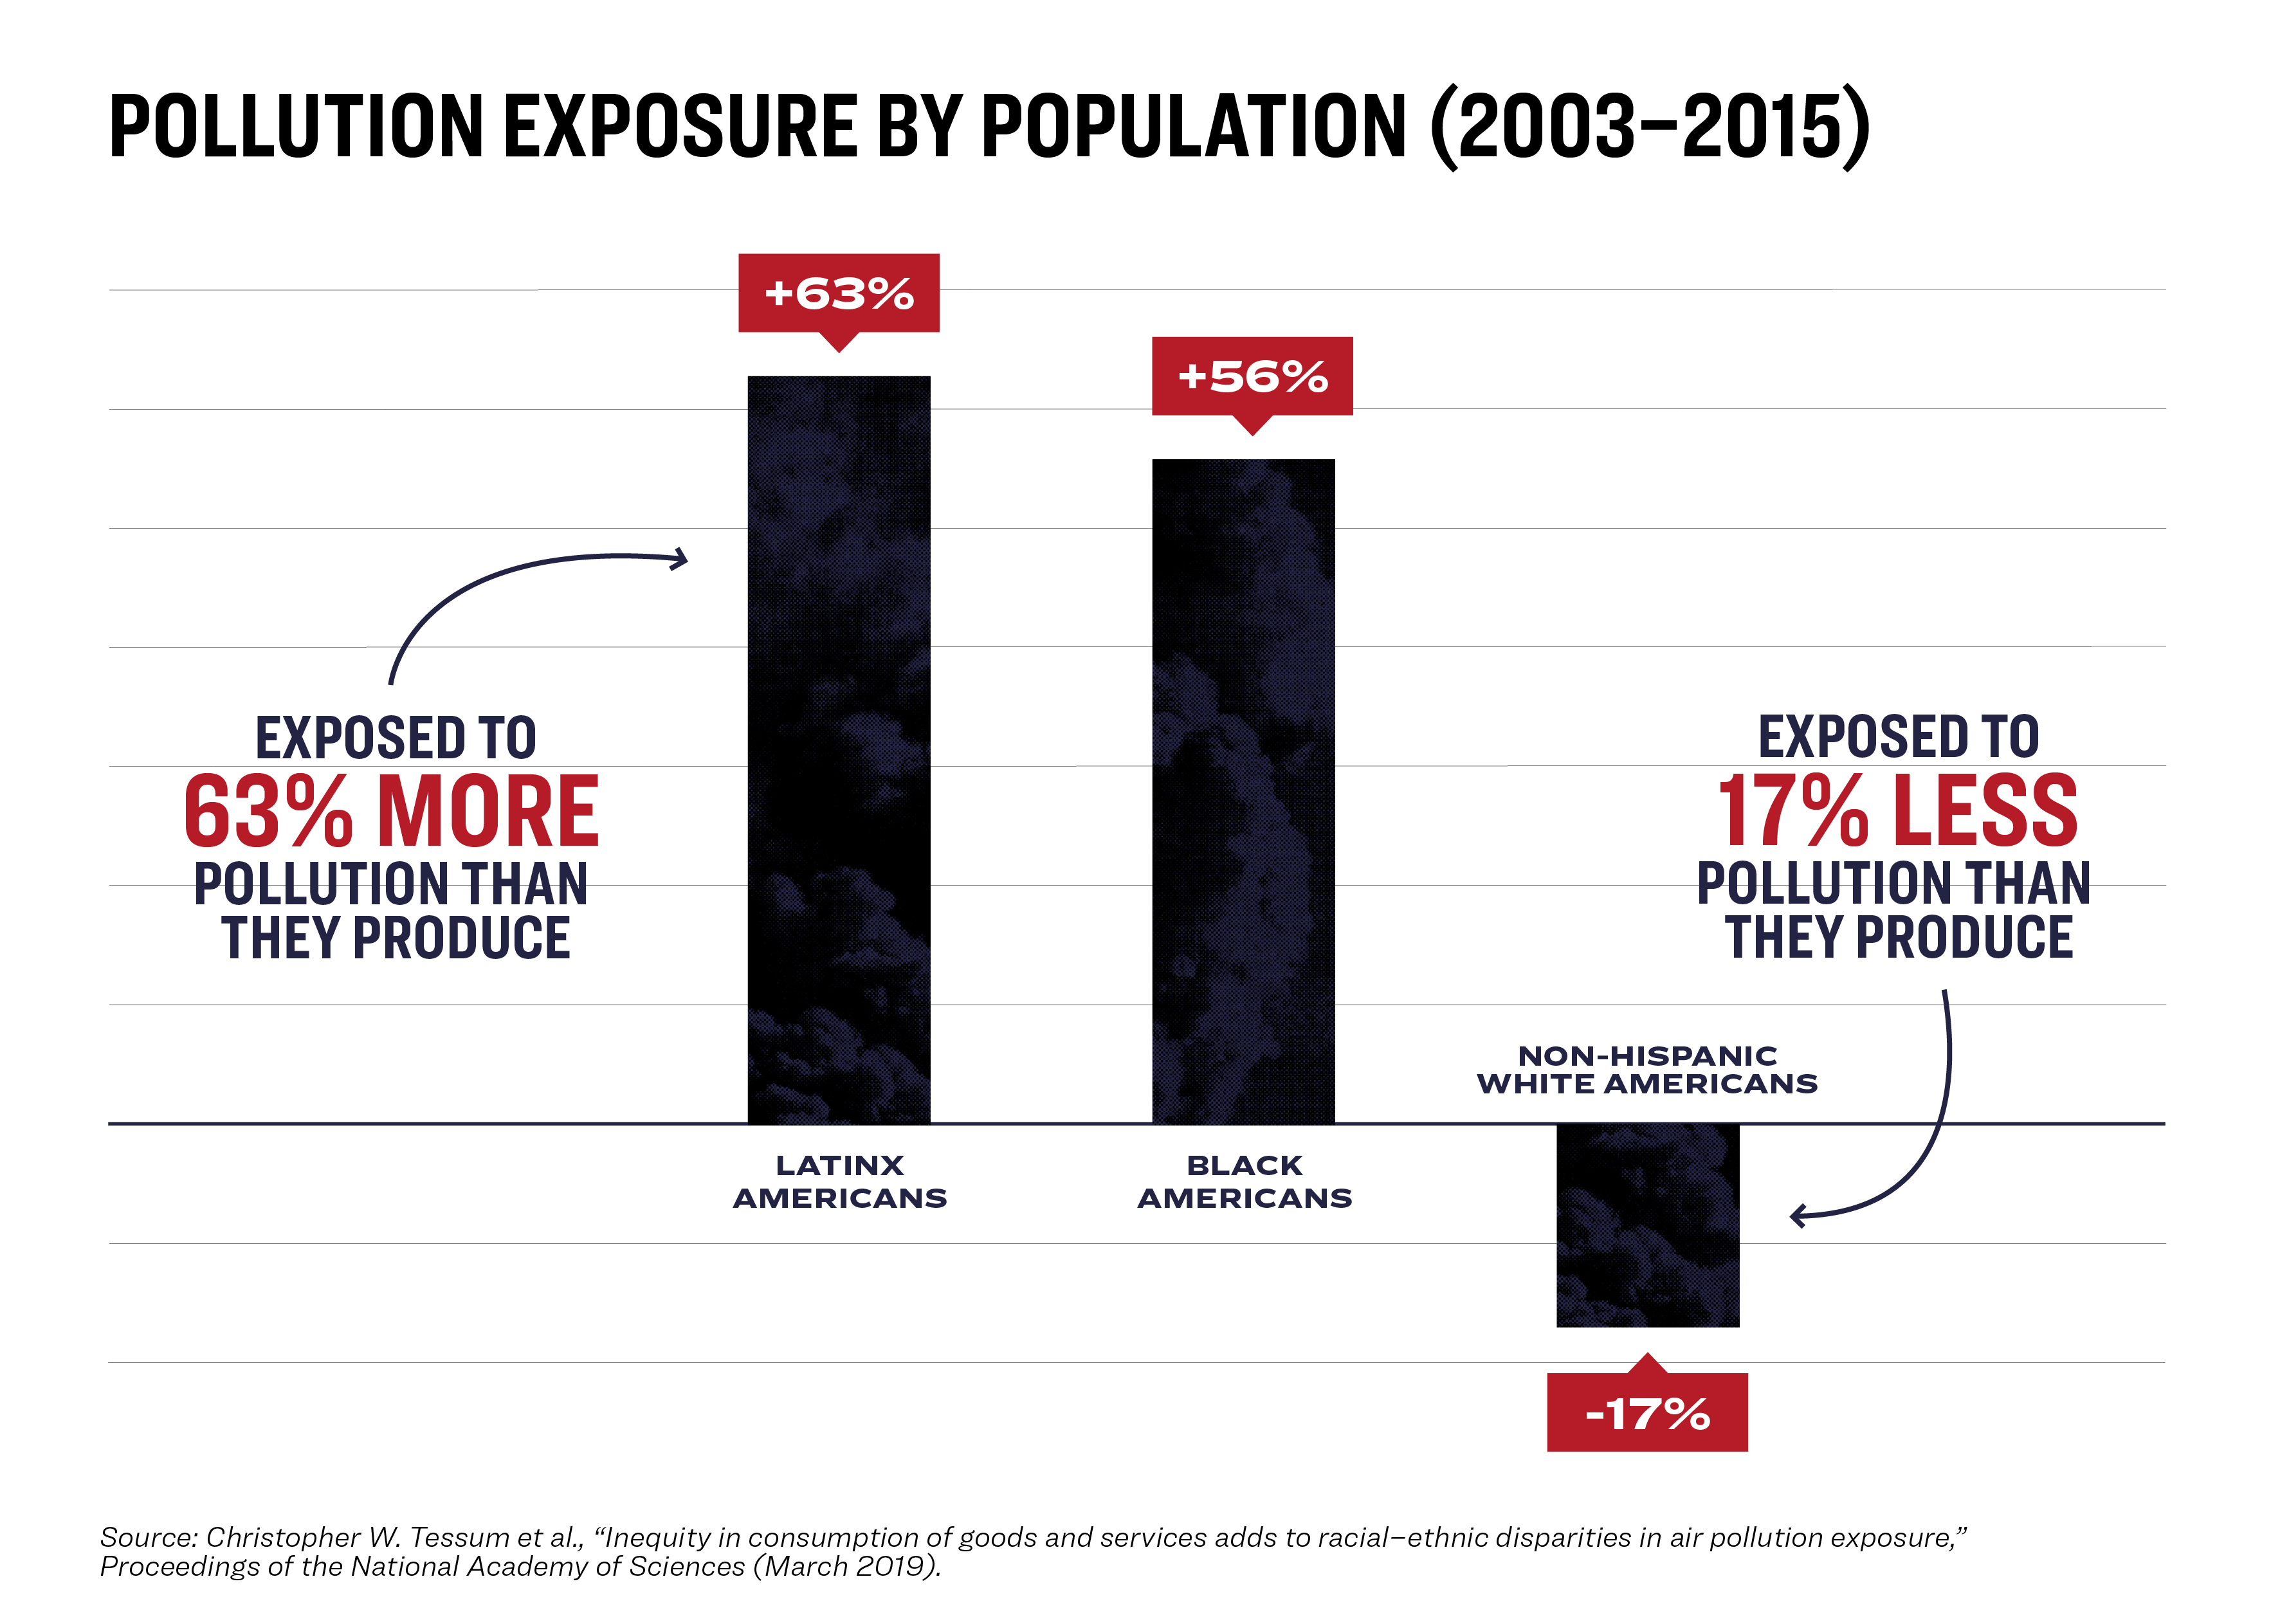 Exposure to air pollution among populations in the US.